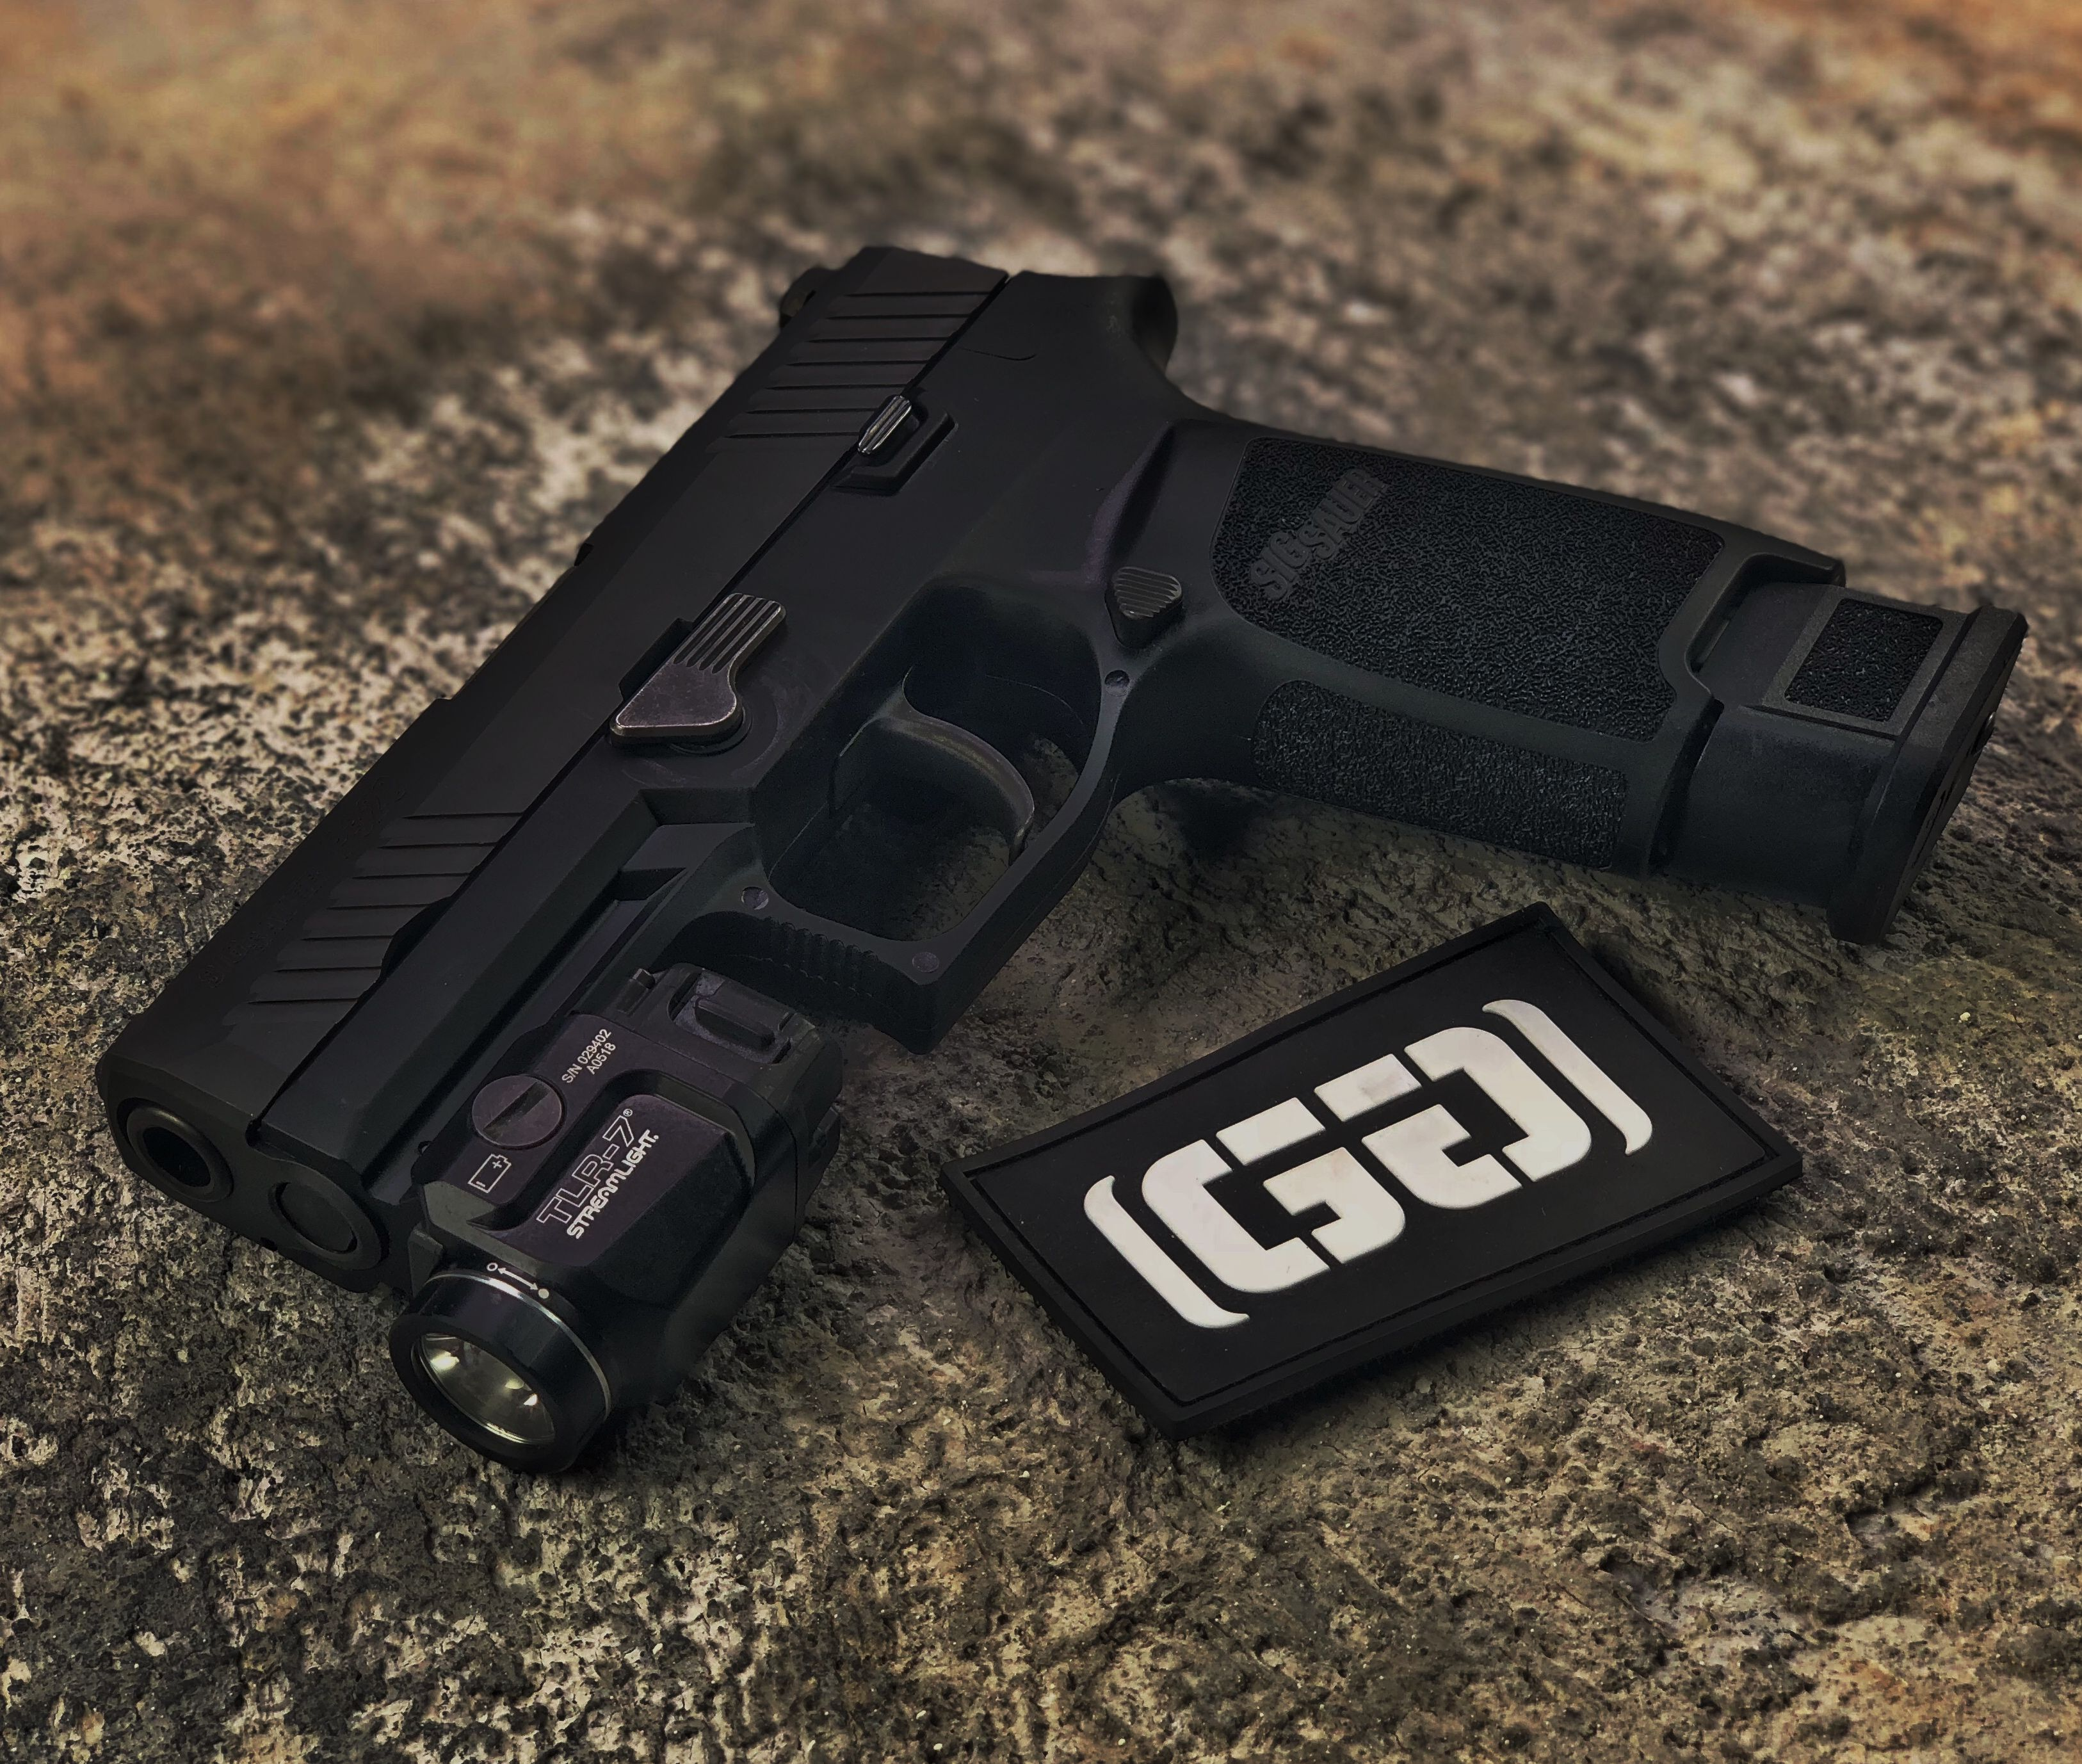 Sig Sauer P320 Build with TLR-7 Streamlight   Sig Sauer P320 80